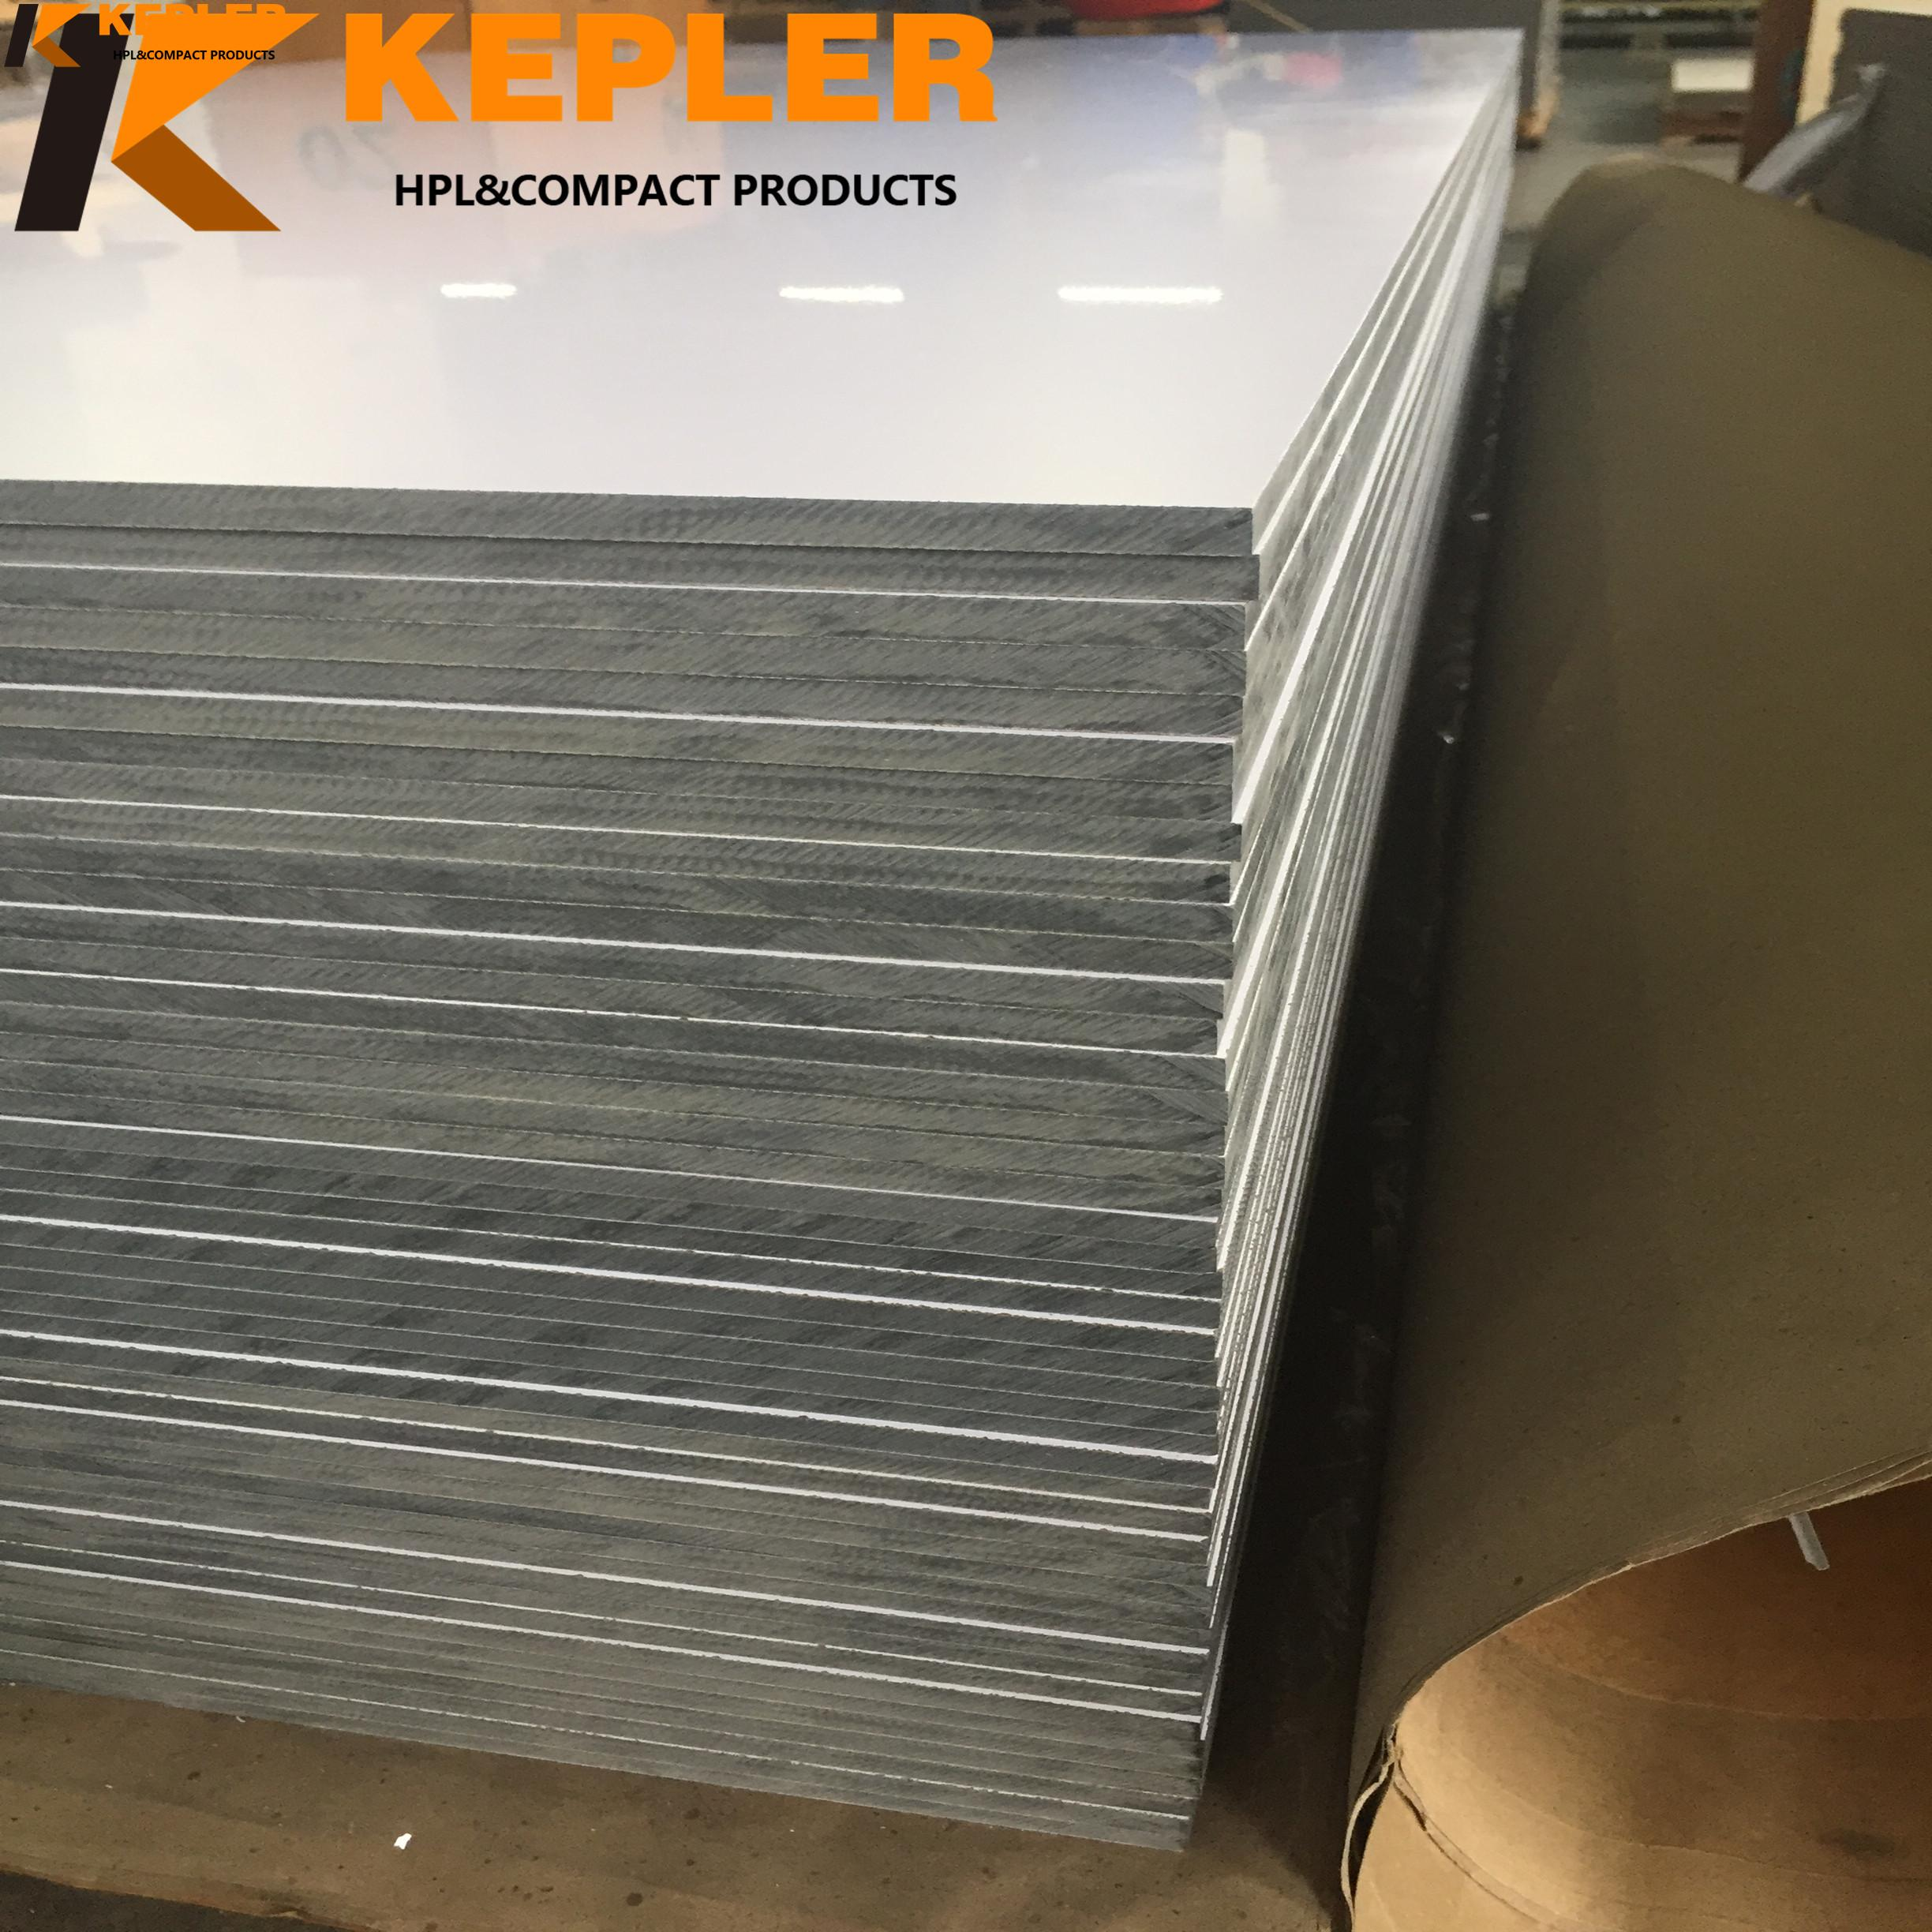 Kepler 12mm thick waterproof decorative high glossy compact laminate hpl board with low price